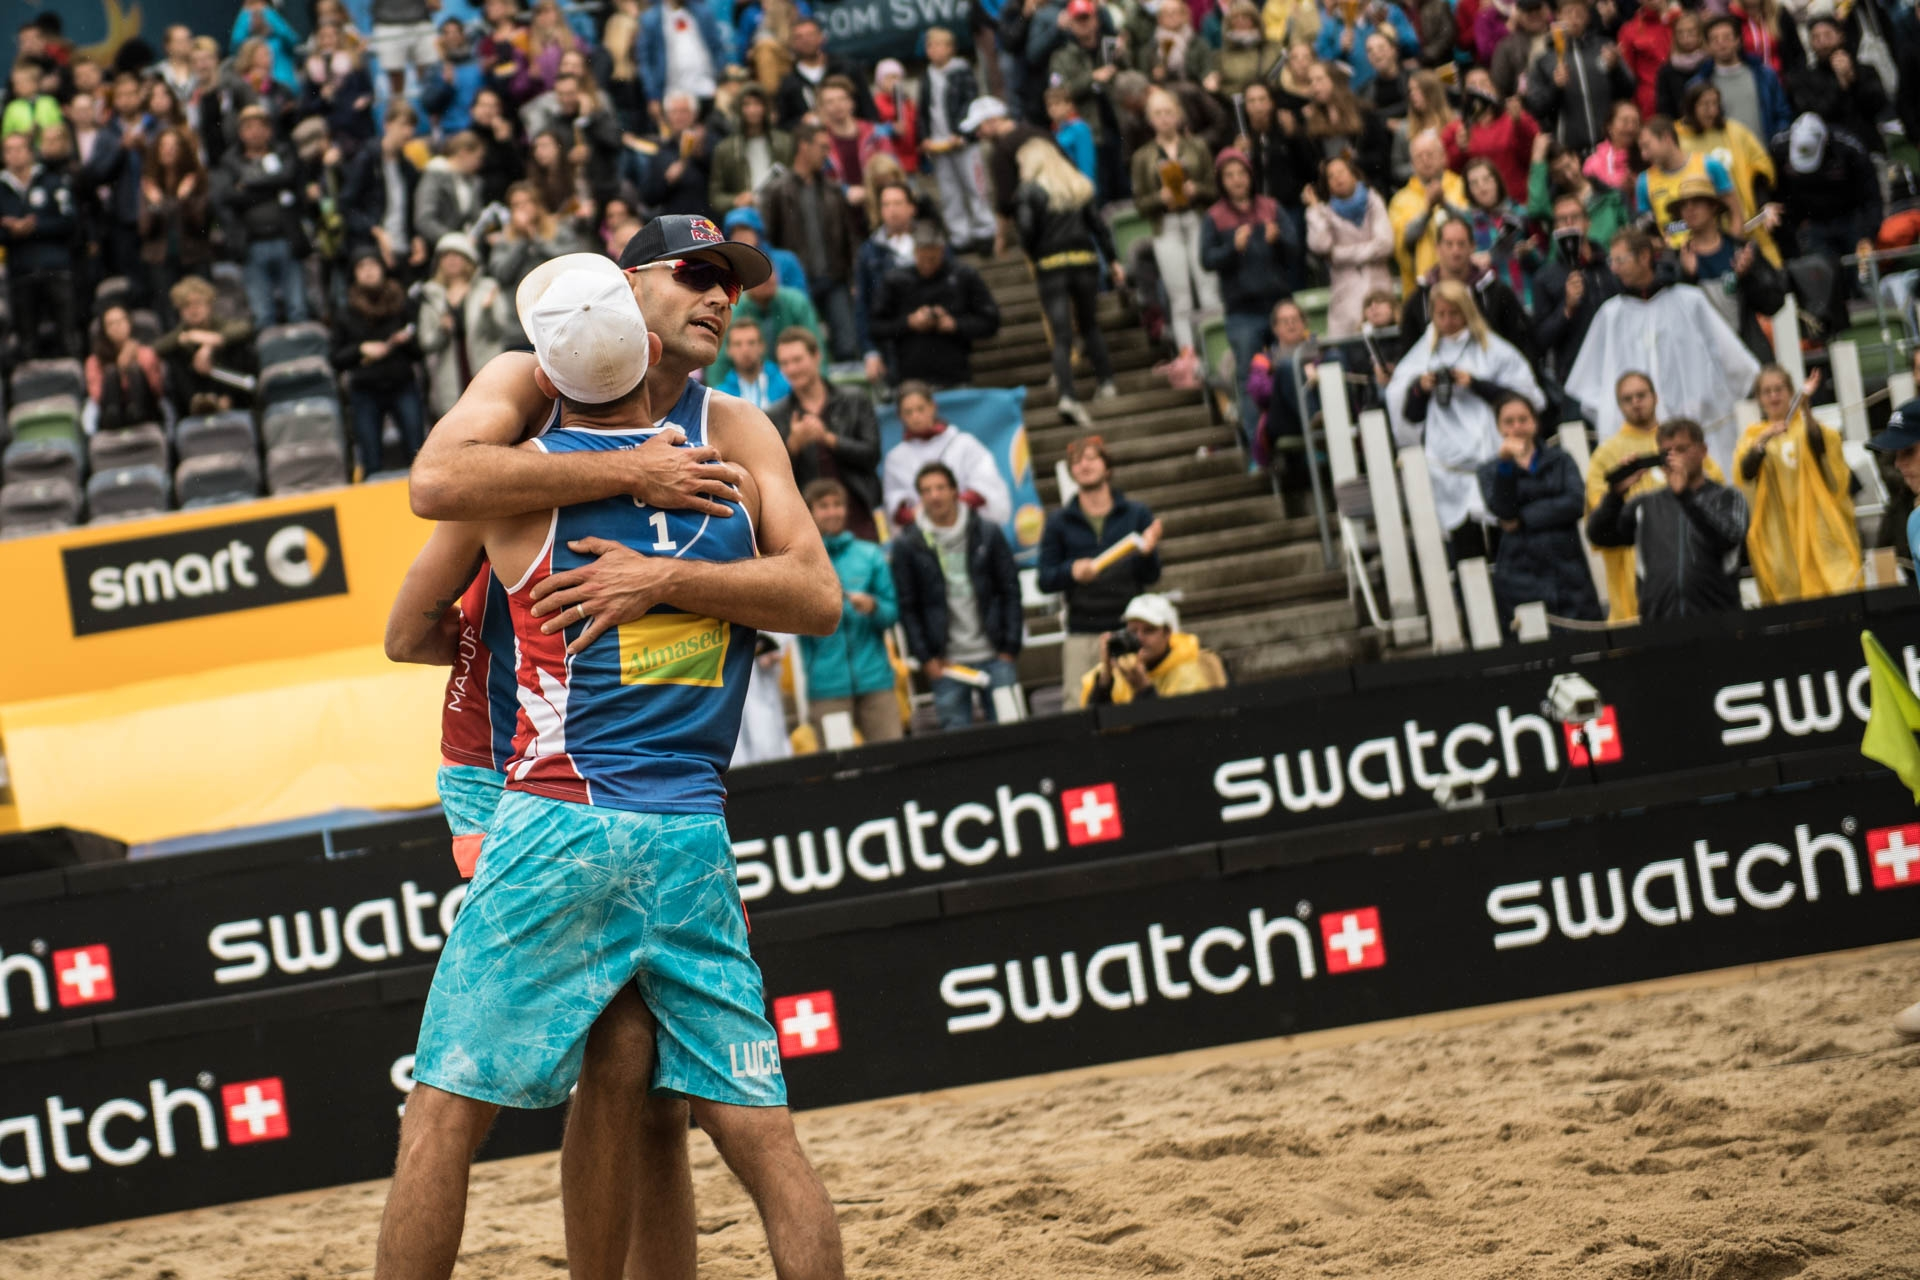 Phil and Nick celebrate after winning gold. Photocredit: Joerg Mitter.